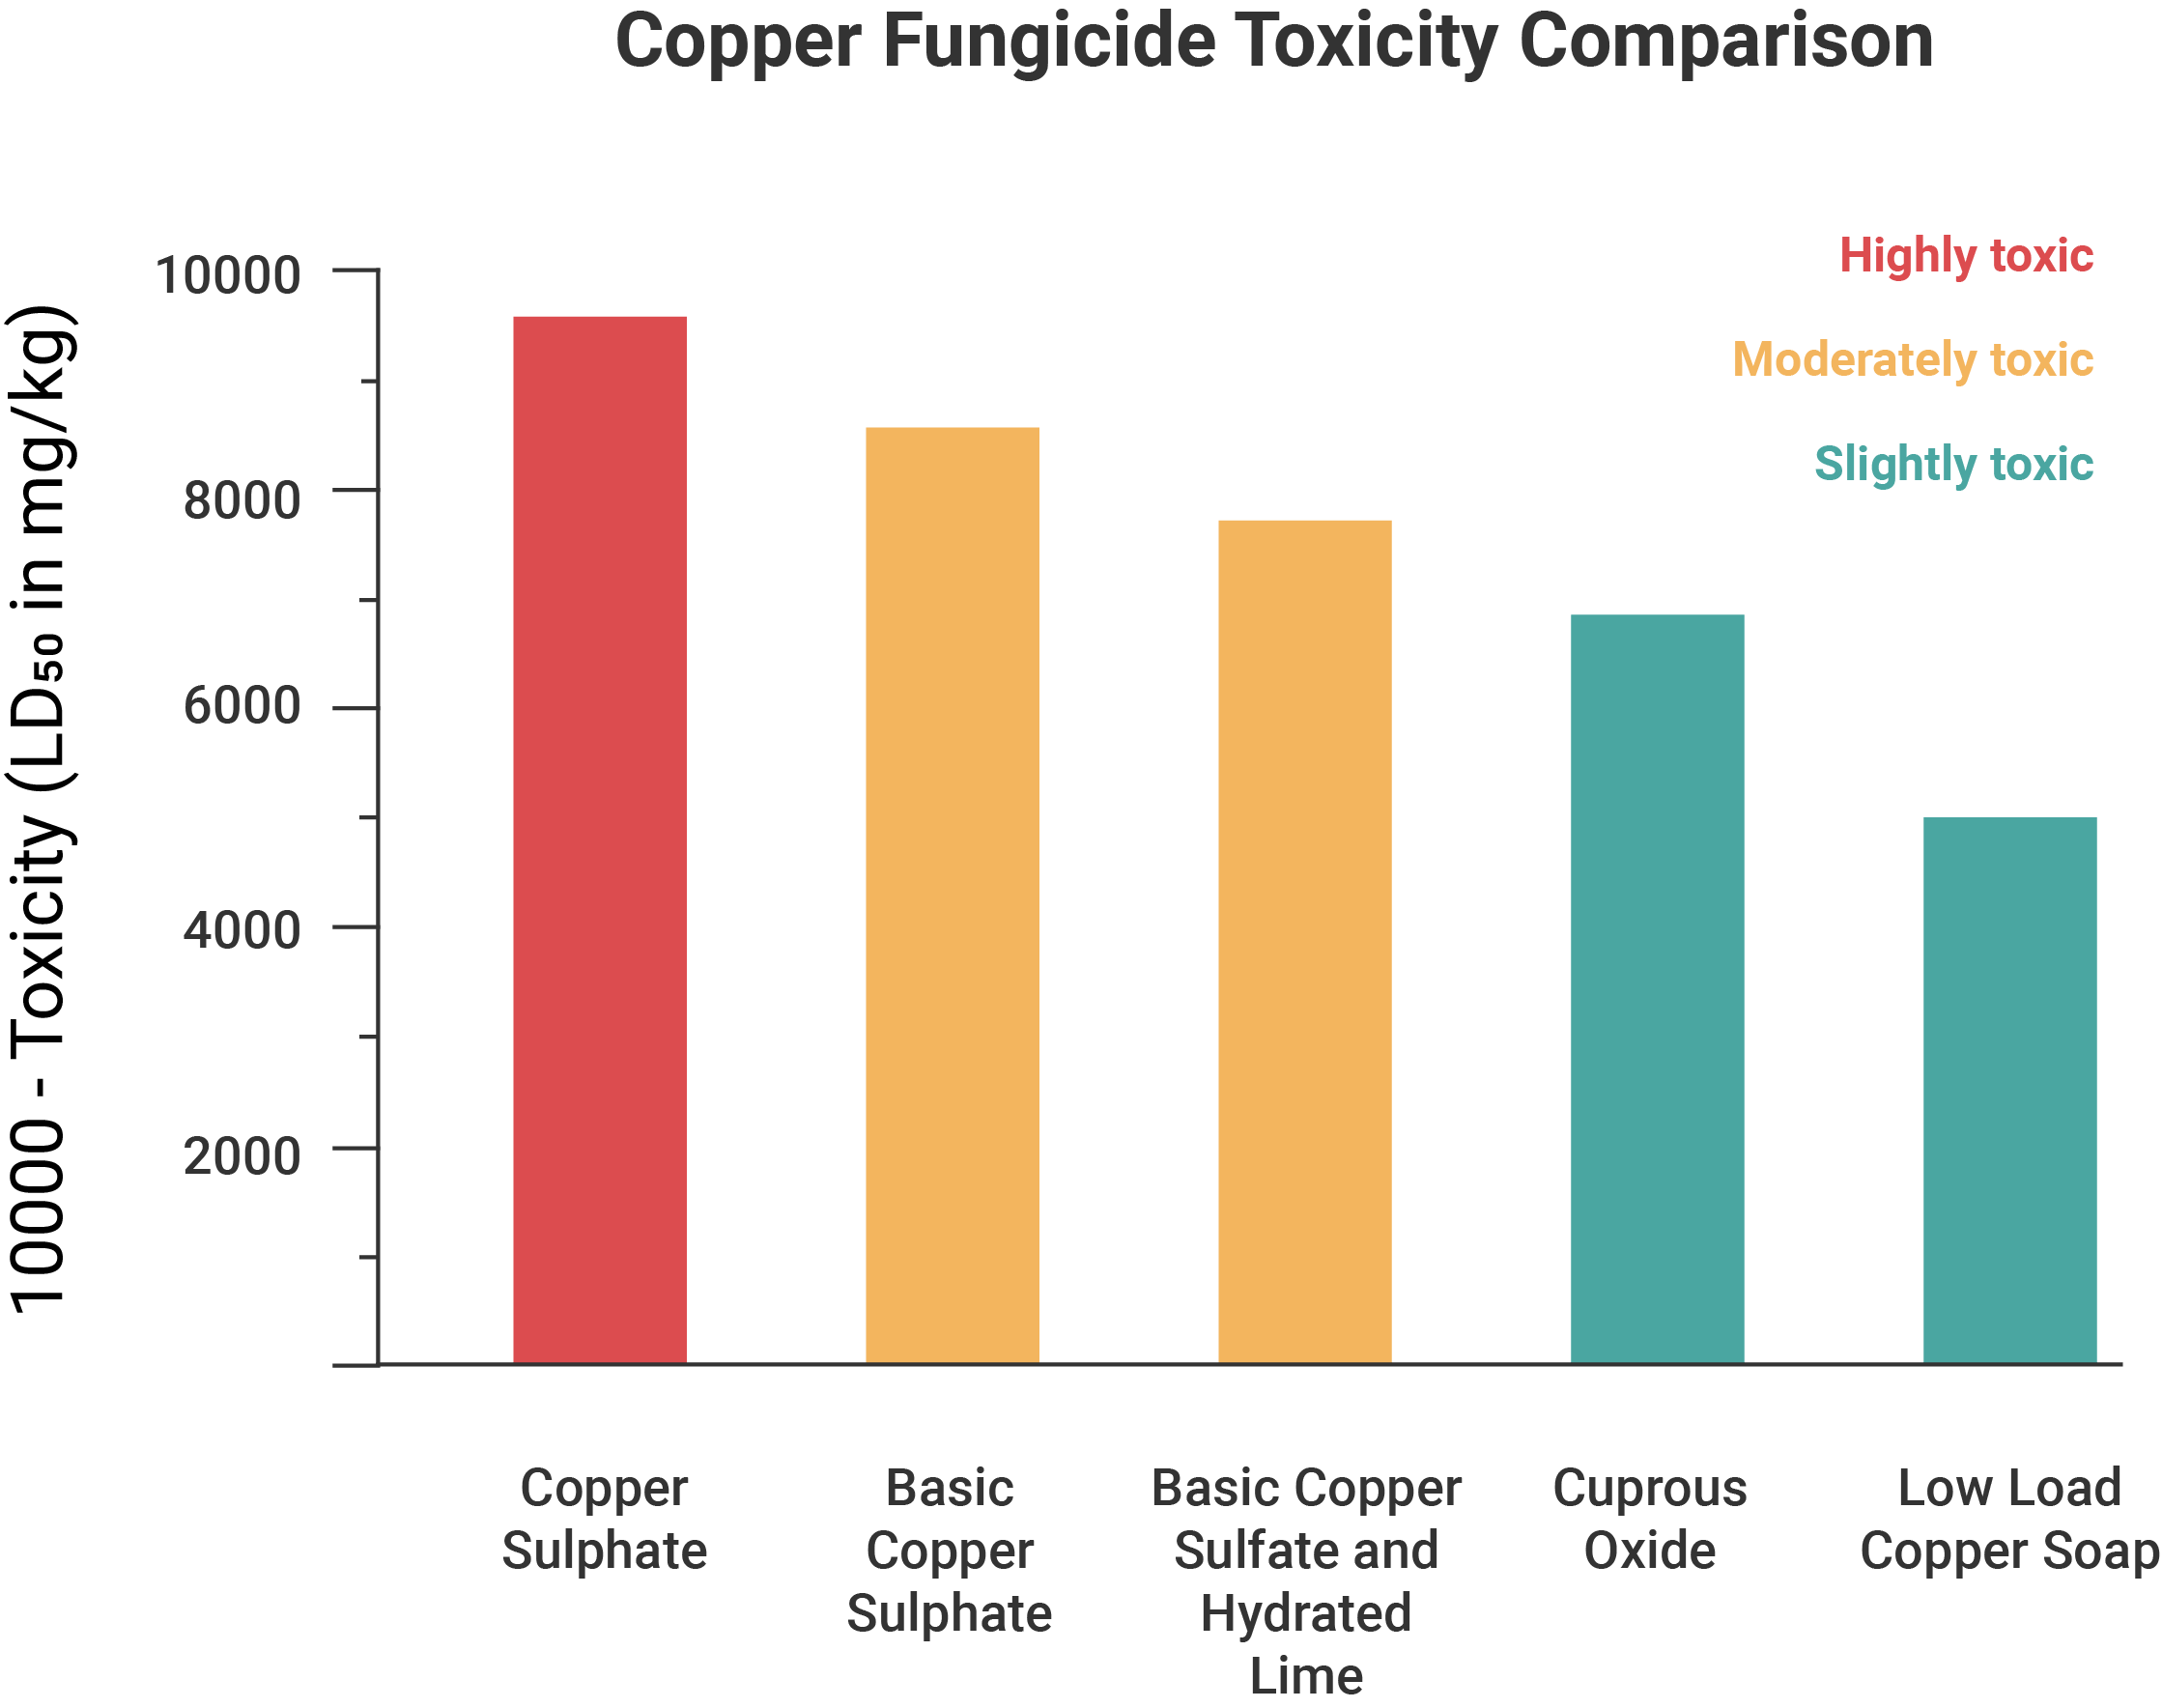 A graph comparing acute toxicity of five copper fungicides (copper sulphate, basic copper sulphate, basic copper sulphate and hydrated lime, cuprous oxide, and low load copper soap).